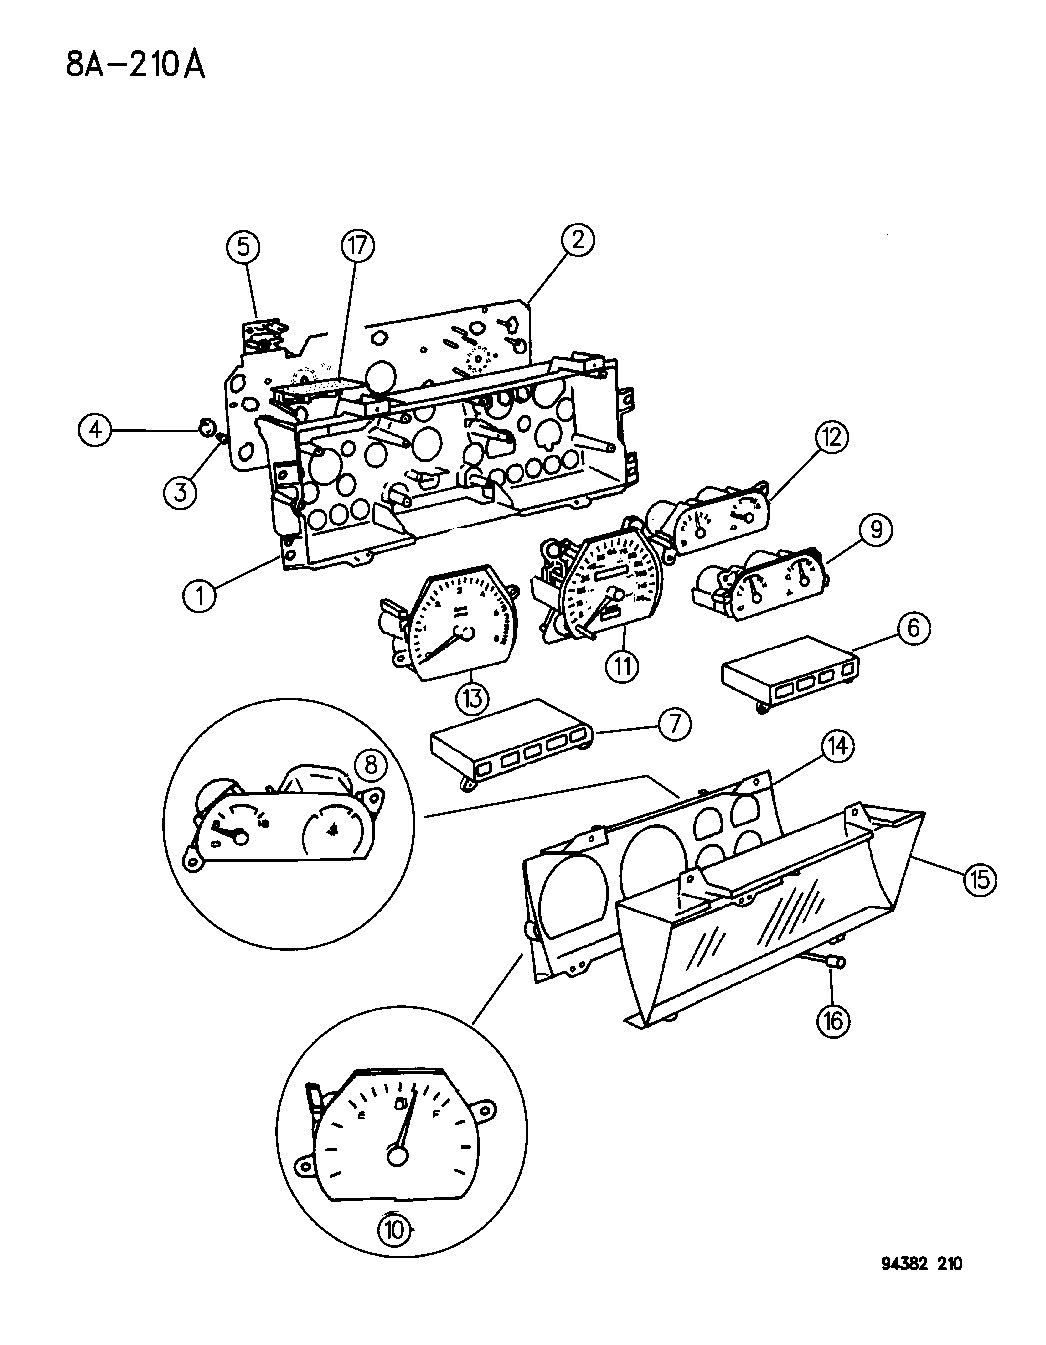 Wiring Diagram For 1995 Dodge Ram 2500 Instrument Cluster from www.moparpartsgiant.com